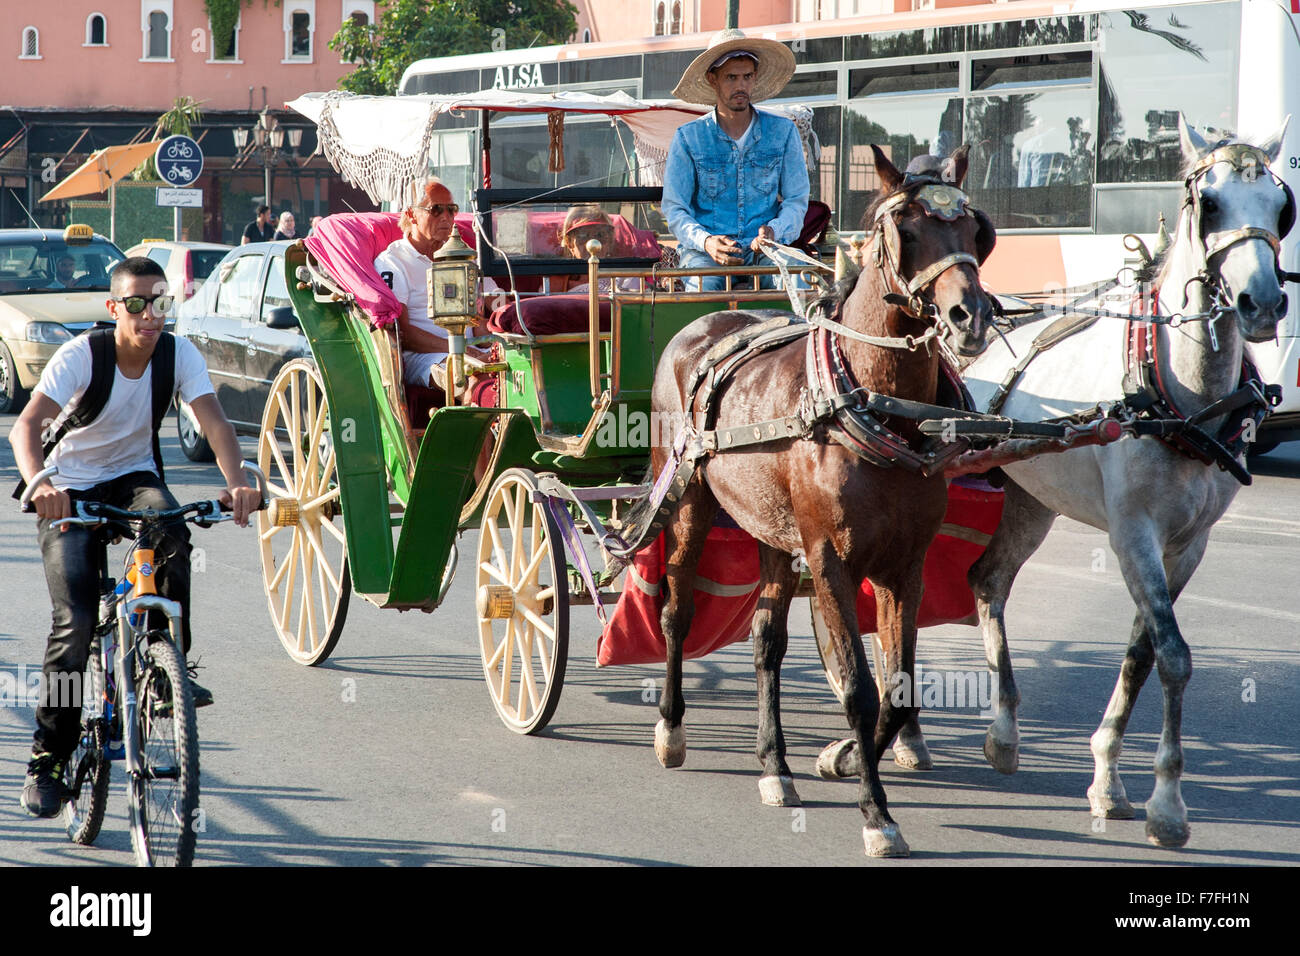 Horse drawn carriage on a street in Marrakech, Morocco. - Stock Image